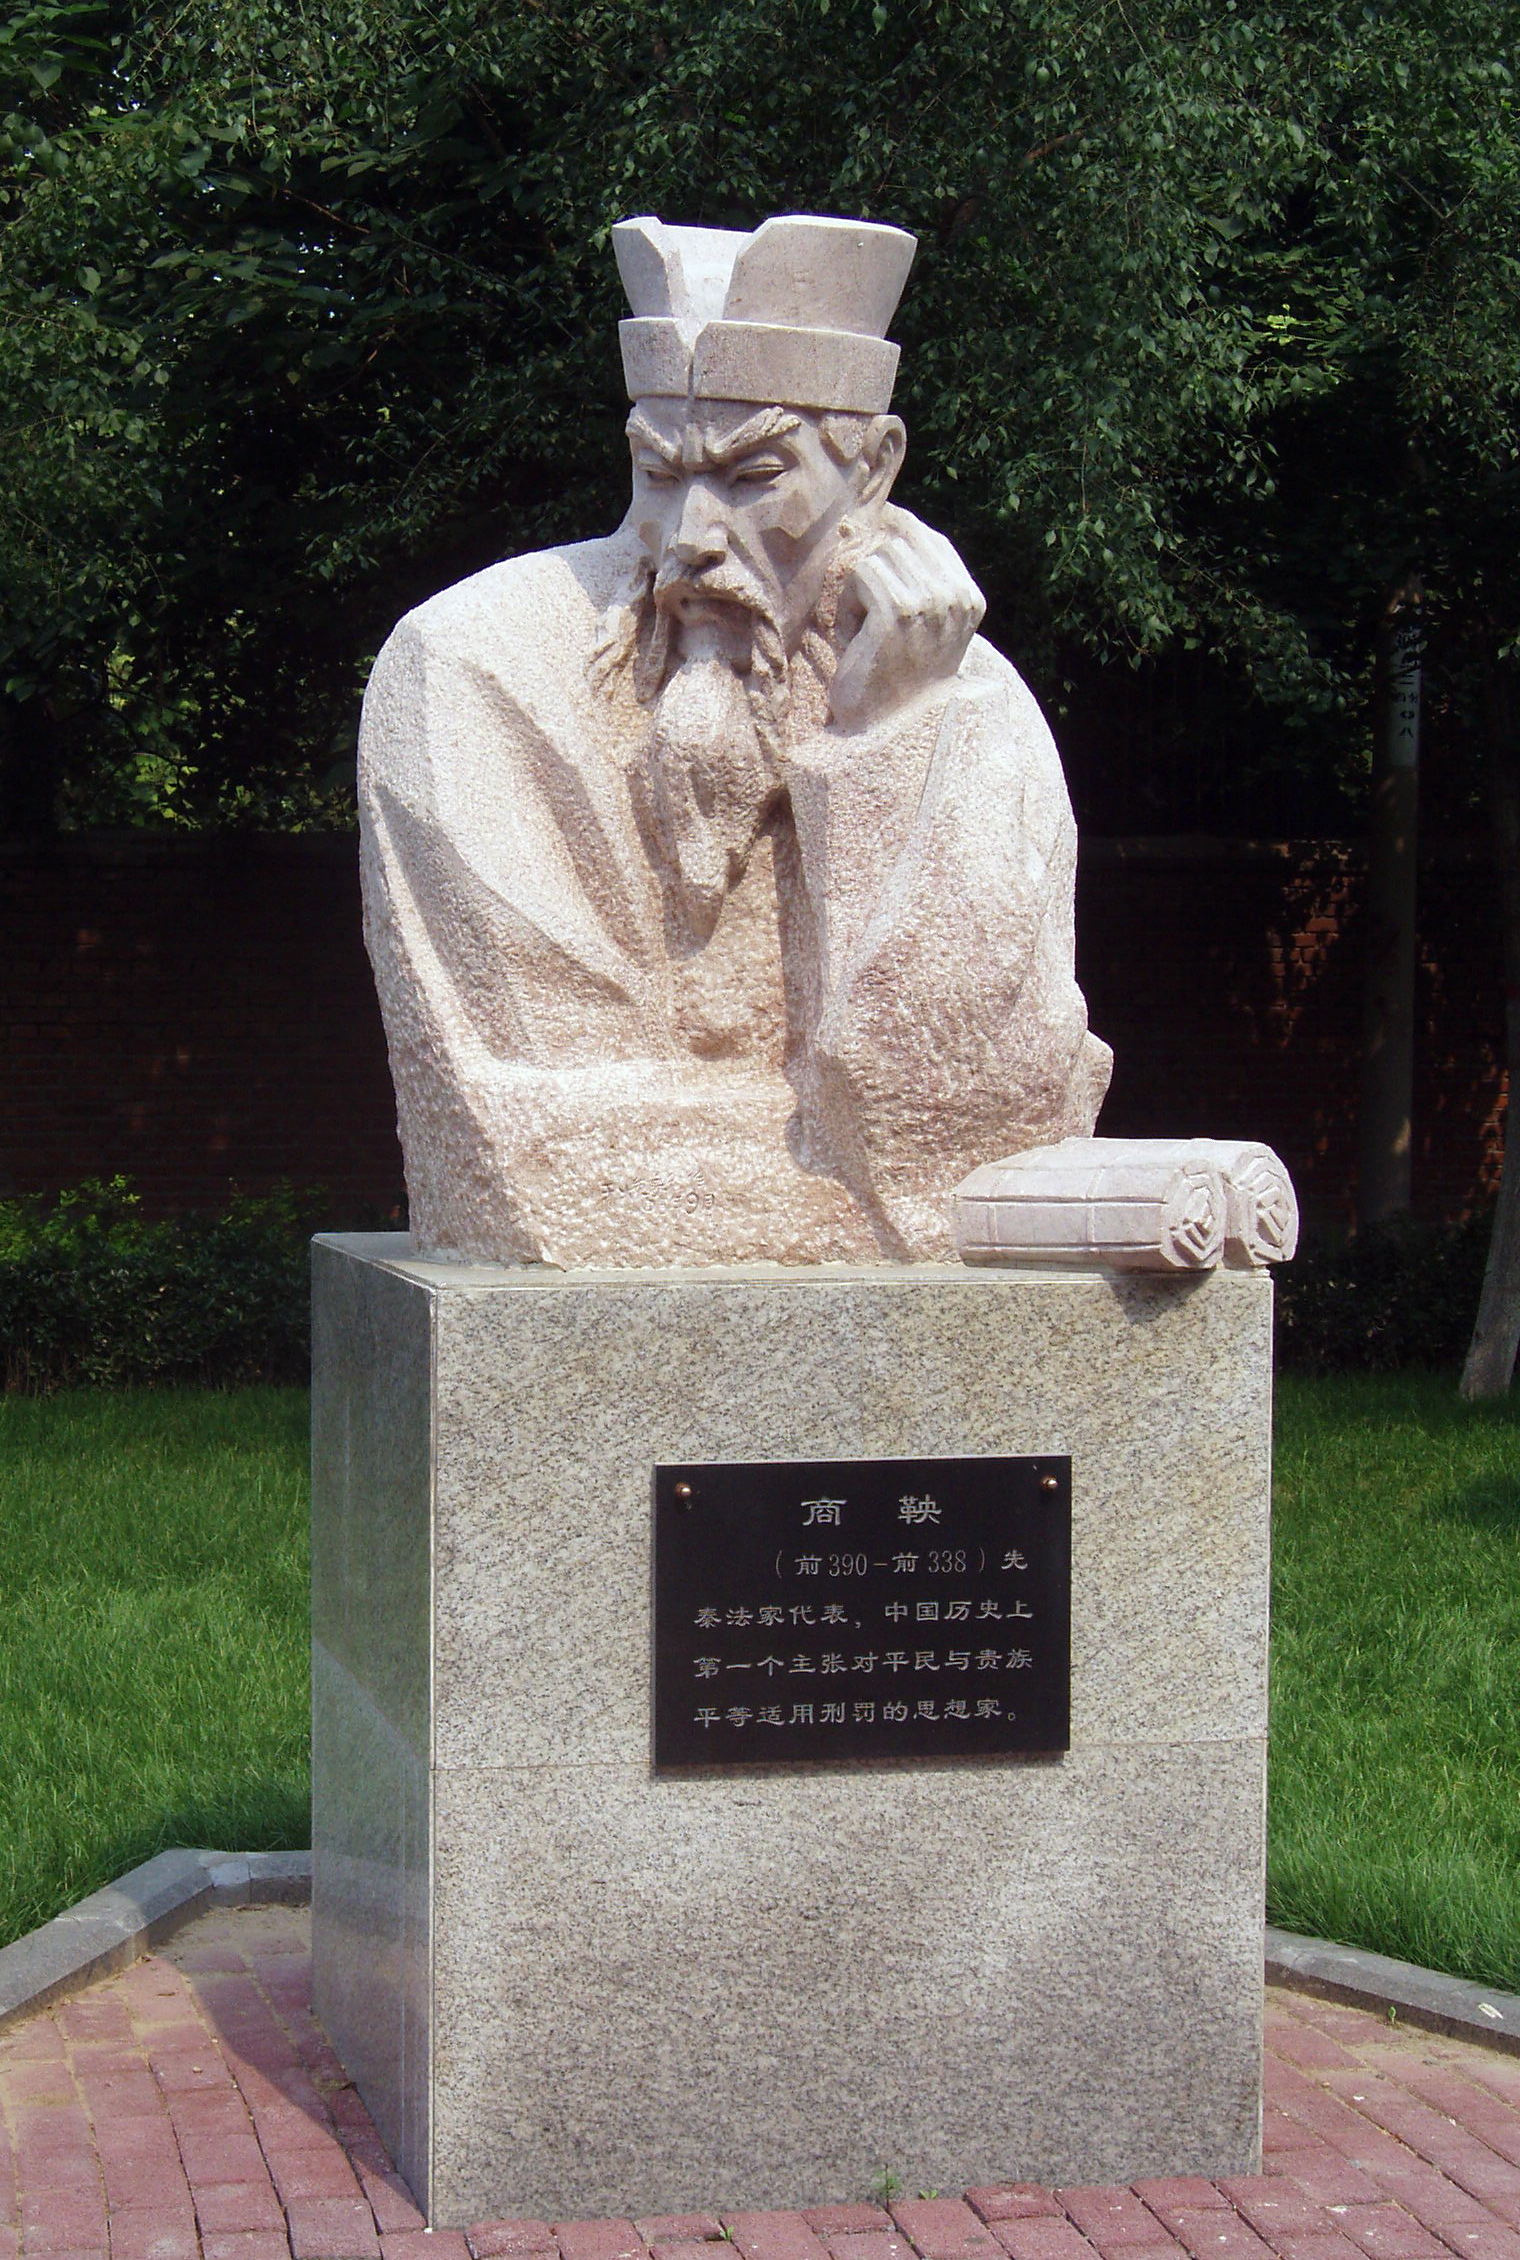 Warring states period: Confucius, Kong Fuzi, Daoism (article